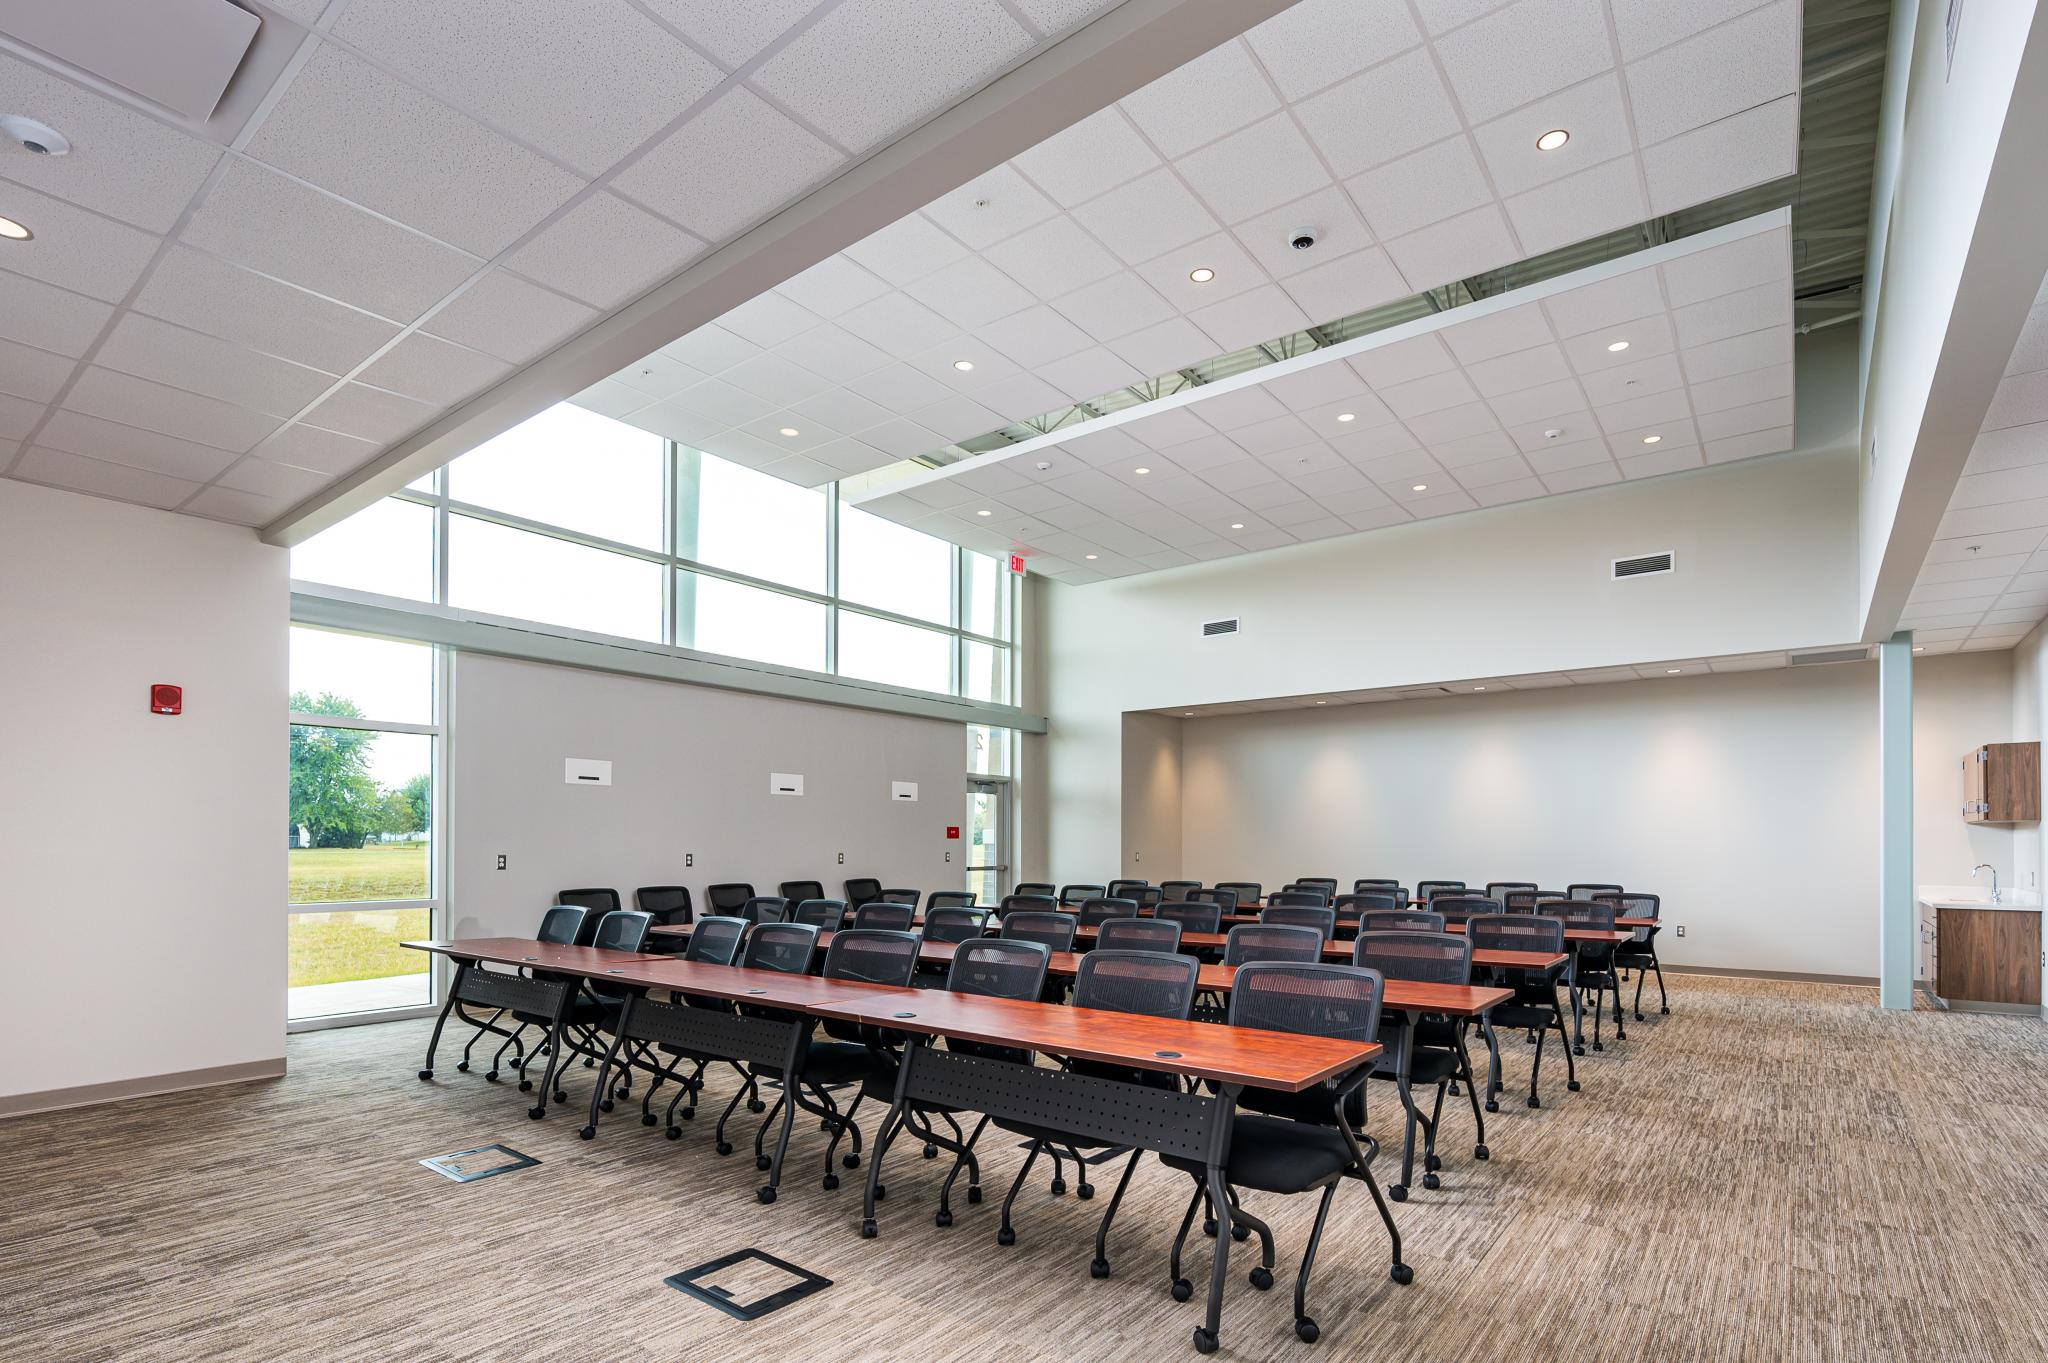 an image of a multipurpose room